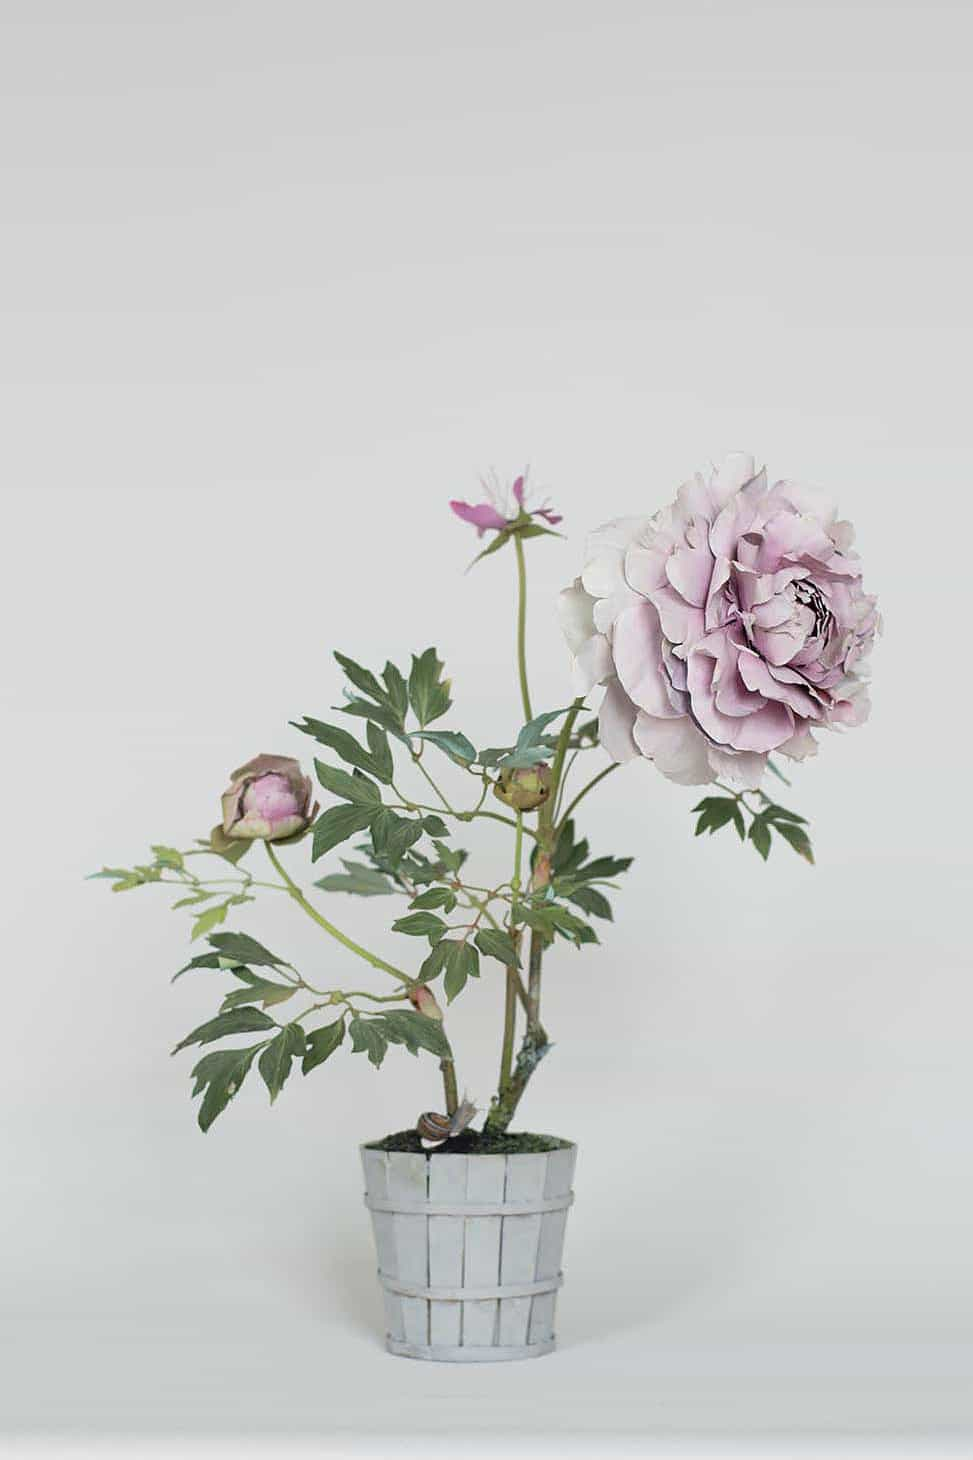 Botanical structures by Carmen Almon, peony, pink peony